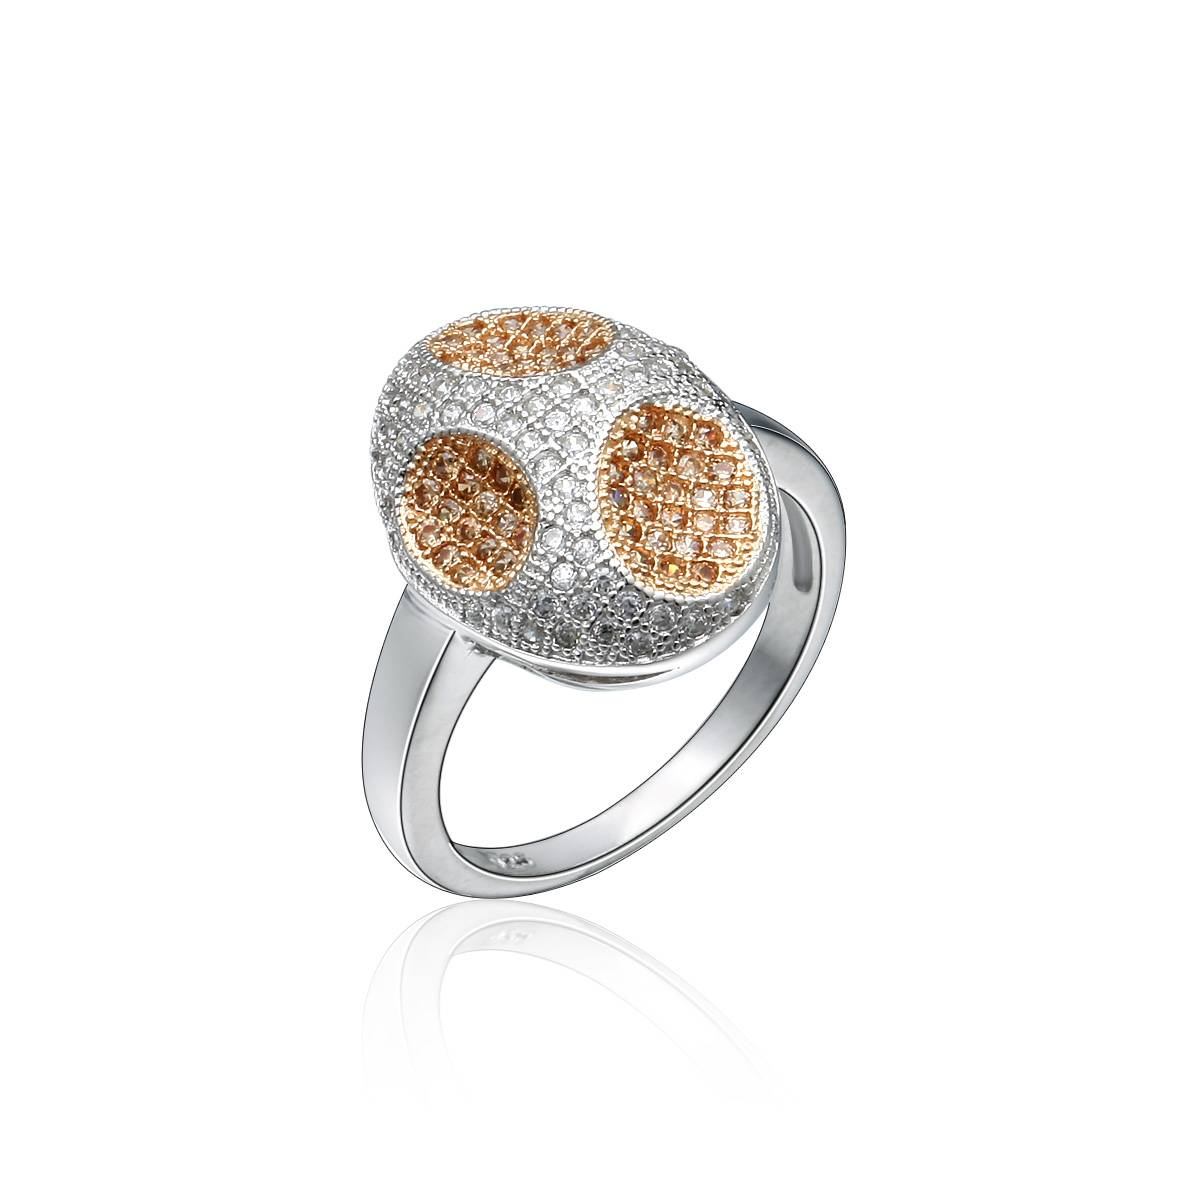 925 Silver Ring with Micropave CZ Jewelry Wholesale